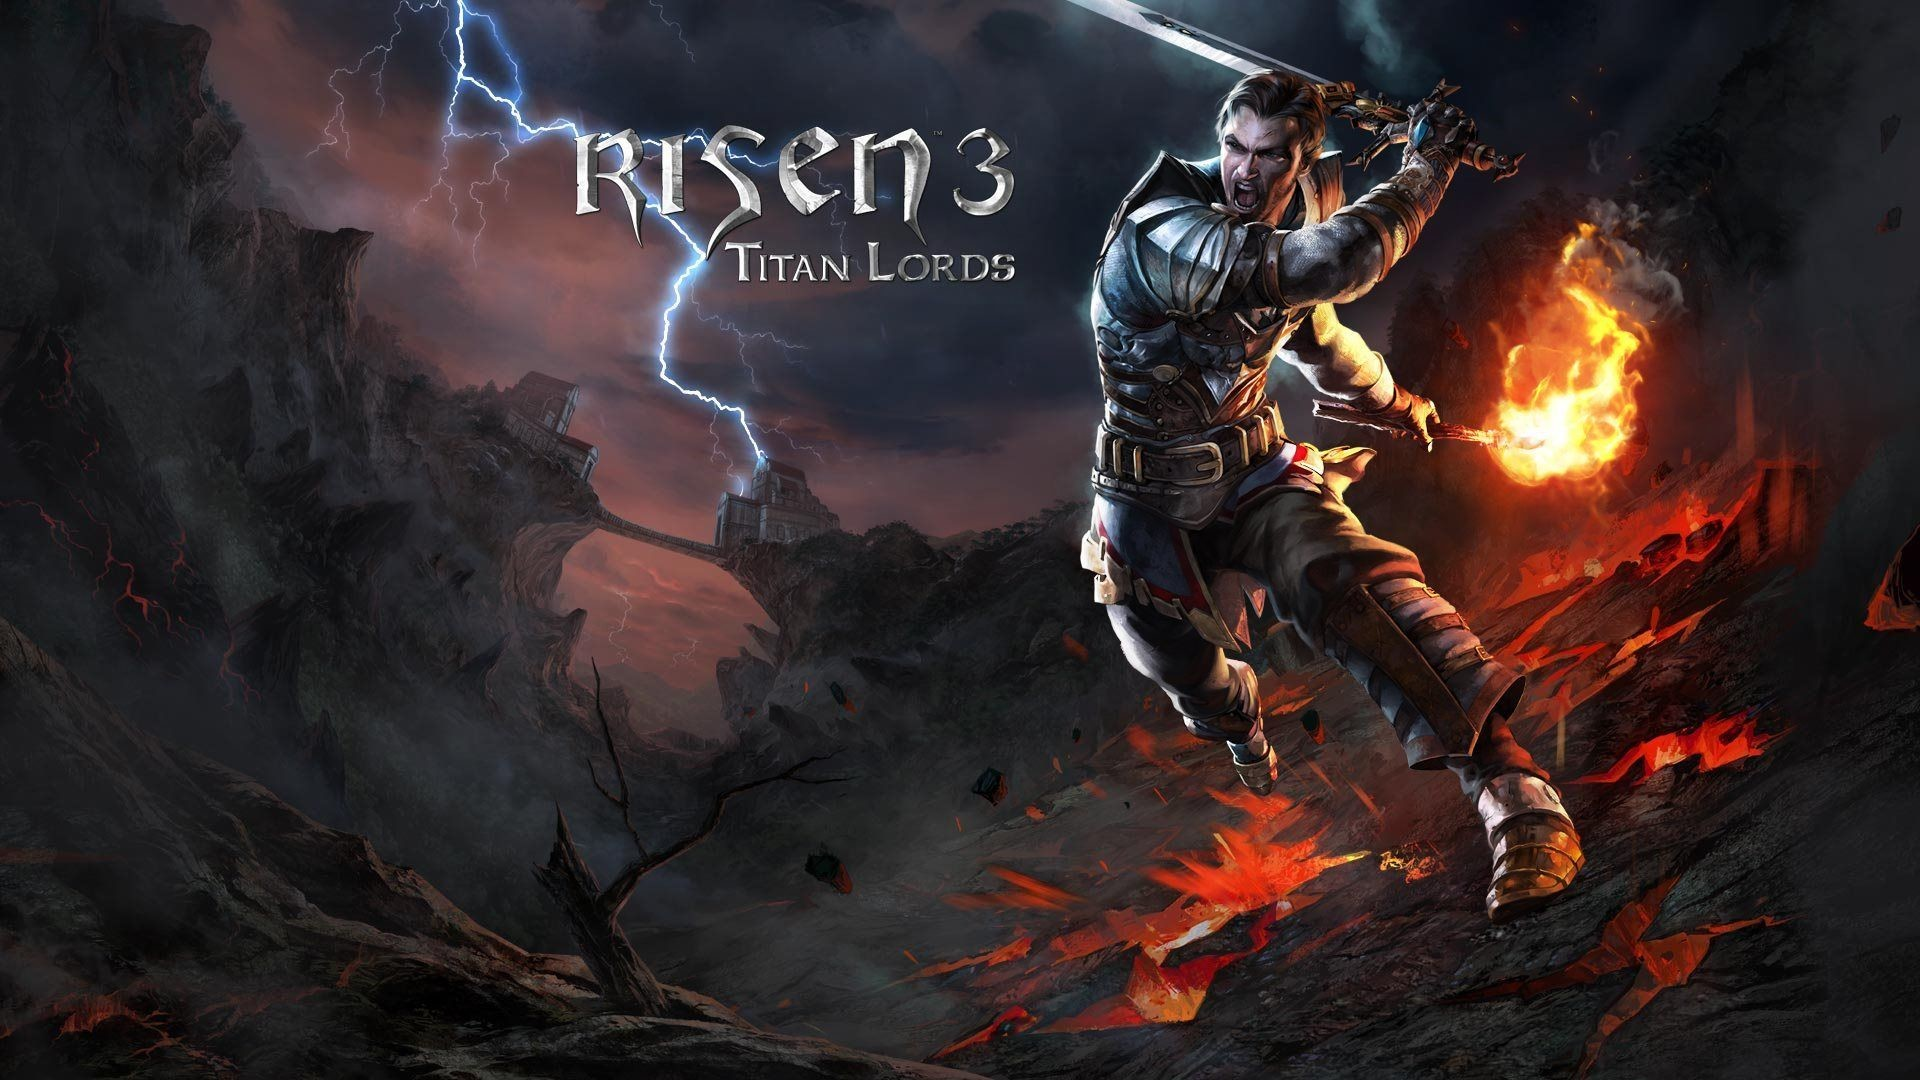 1920x1080 risen 3 titan lords Wallpaper